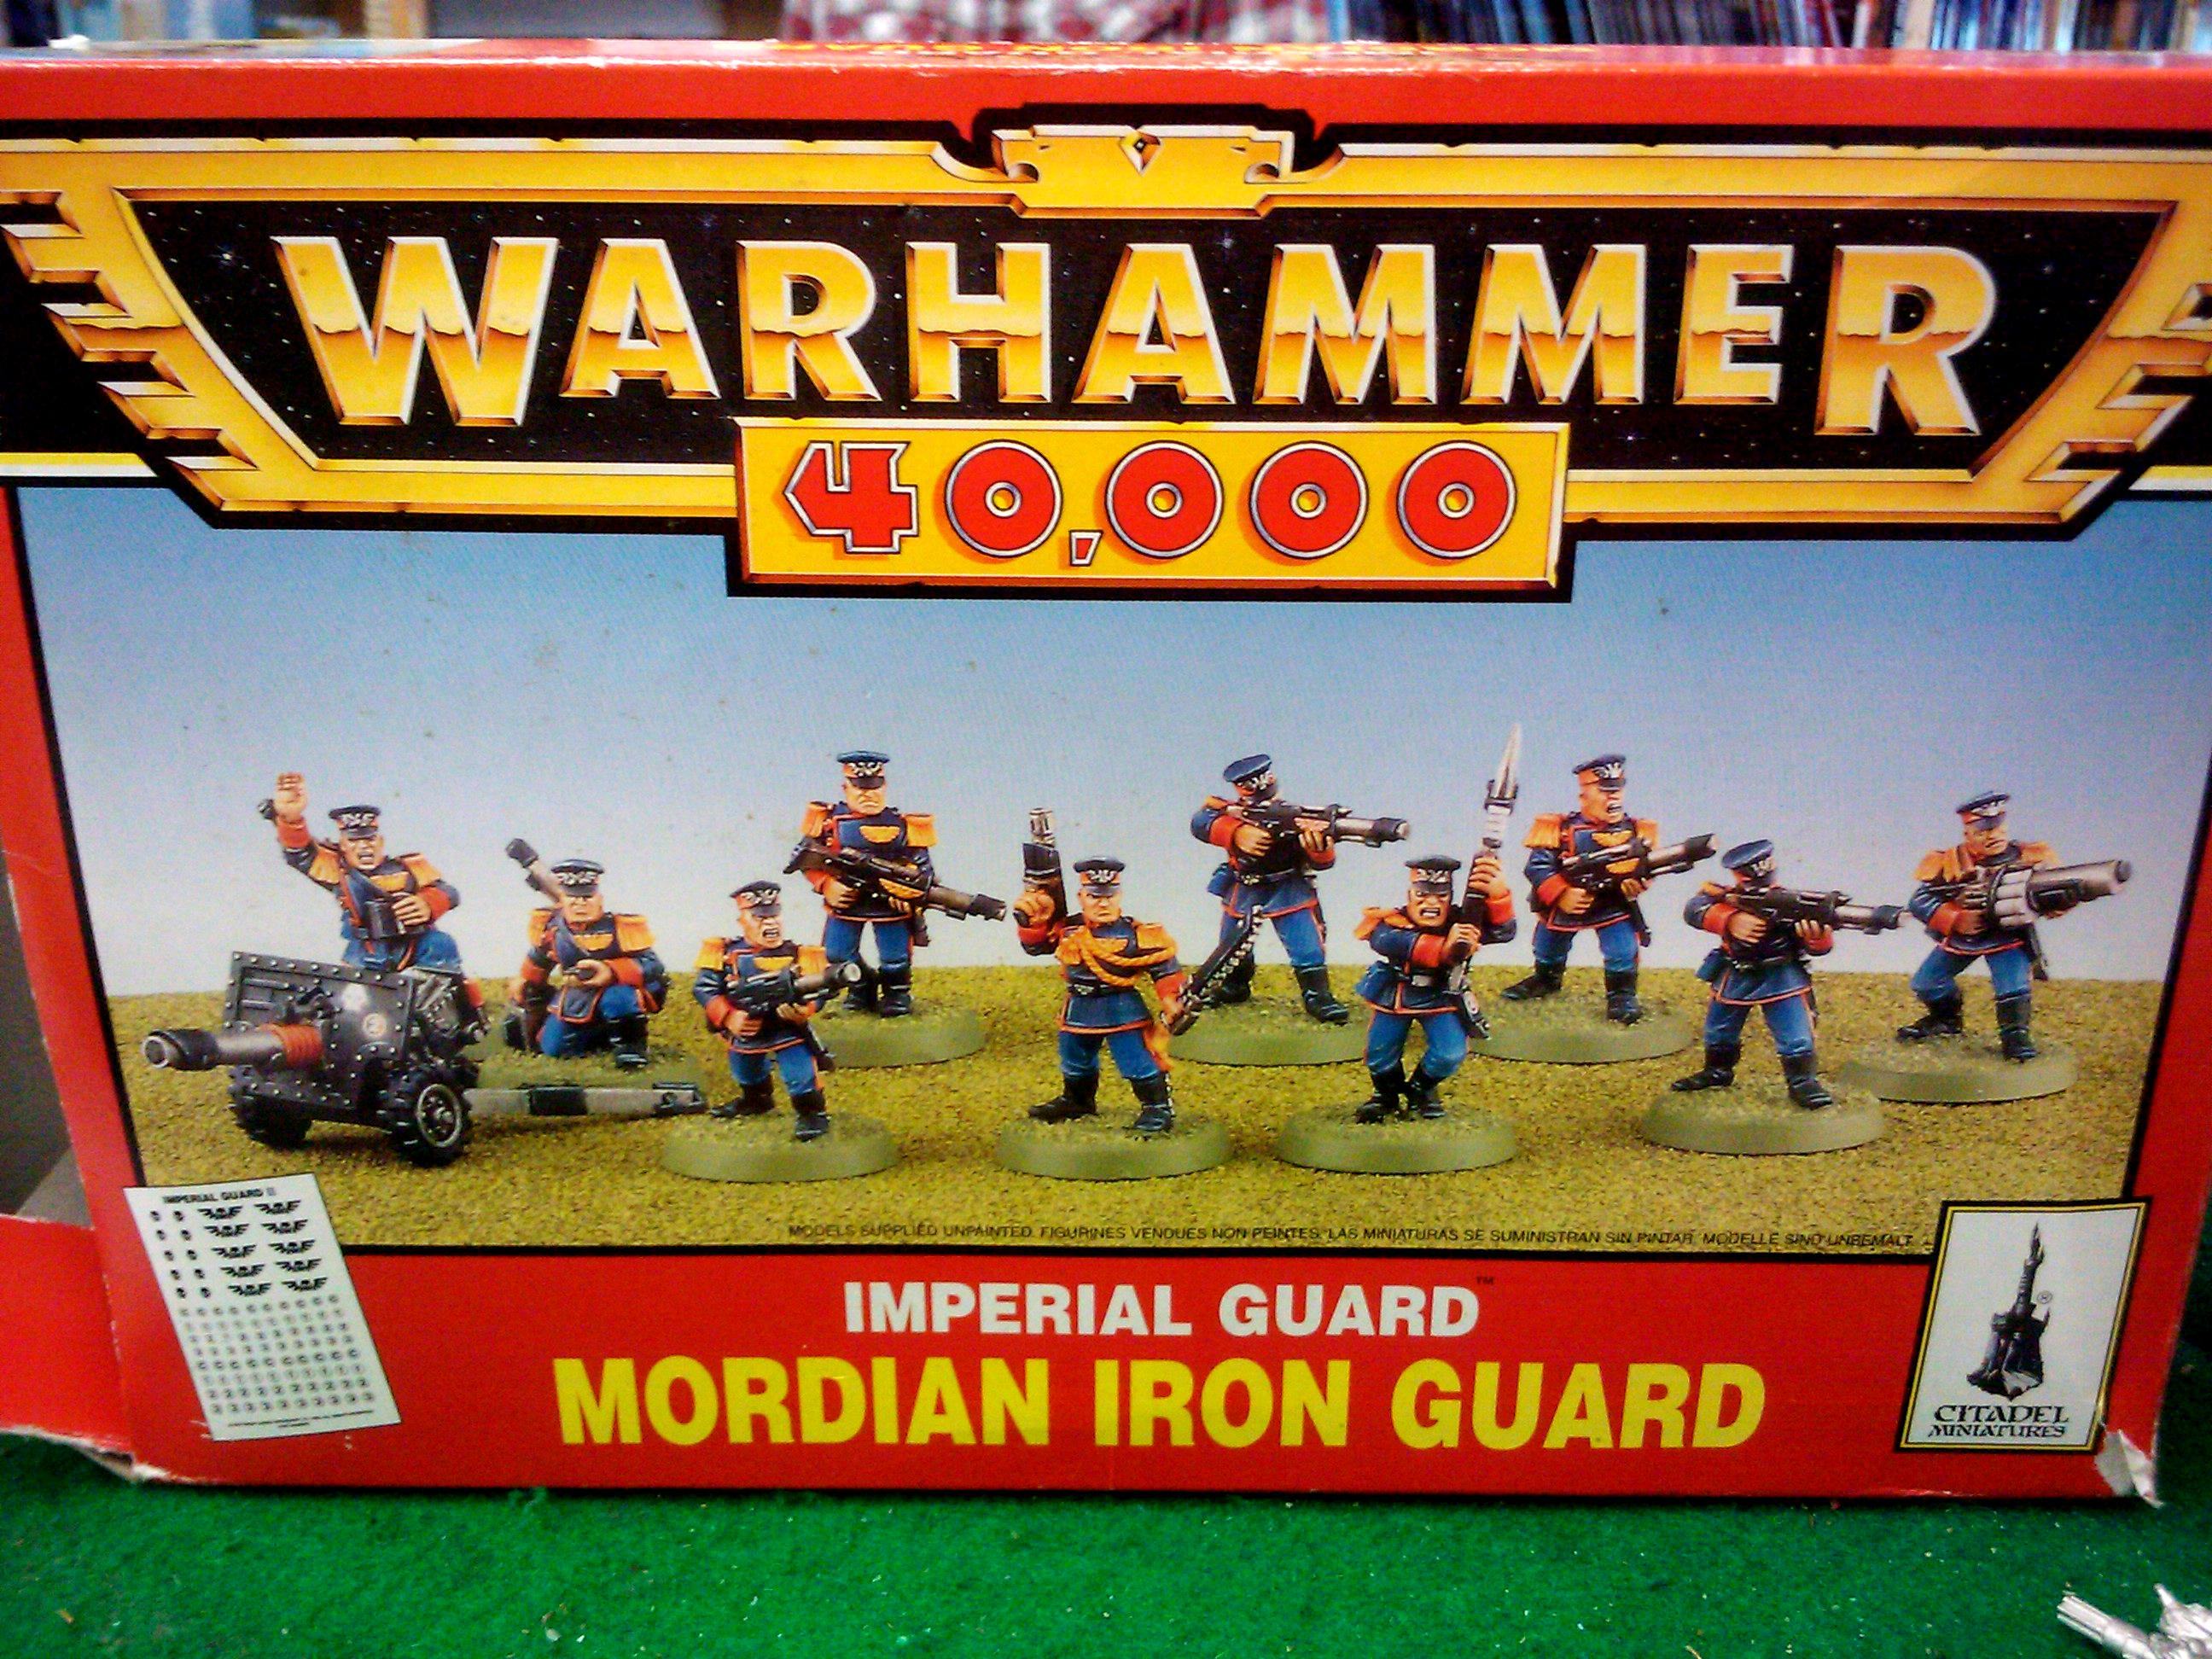 2nd Edition, Games Workshop, Imperial Guard, Mordian, Mordian Iron Guard, Warhammer 40,000